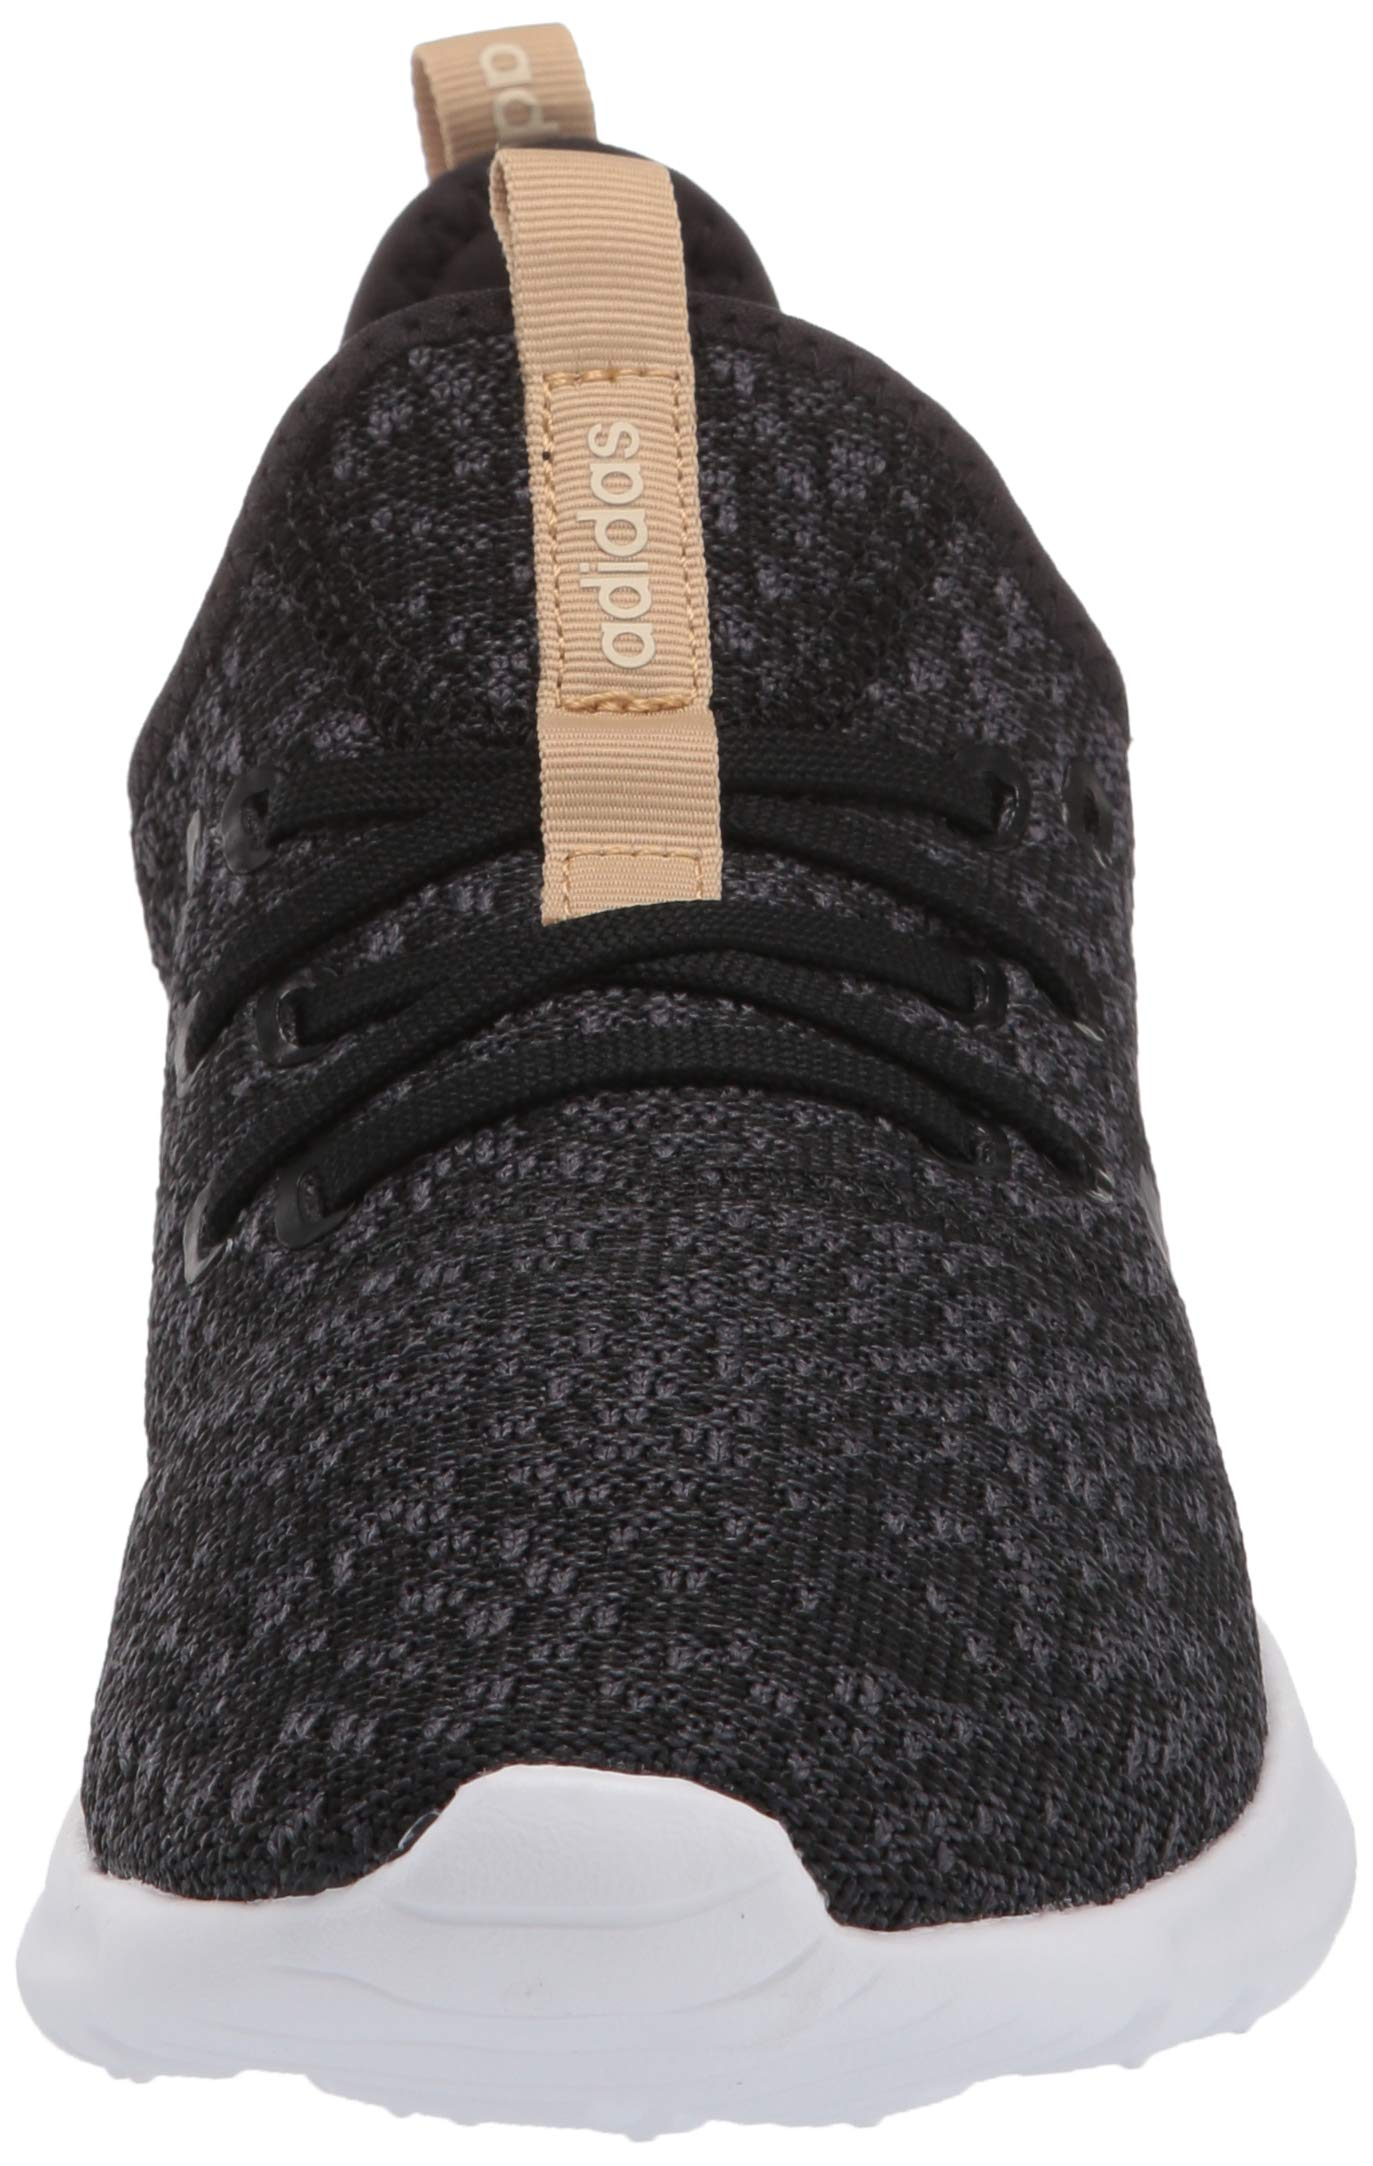 adidas Women's Cloudfoam Pure, Grey/Black, 5.5 M US by adidas (Image #4)